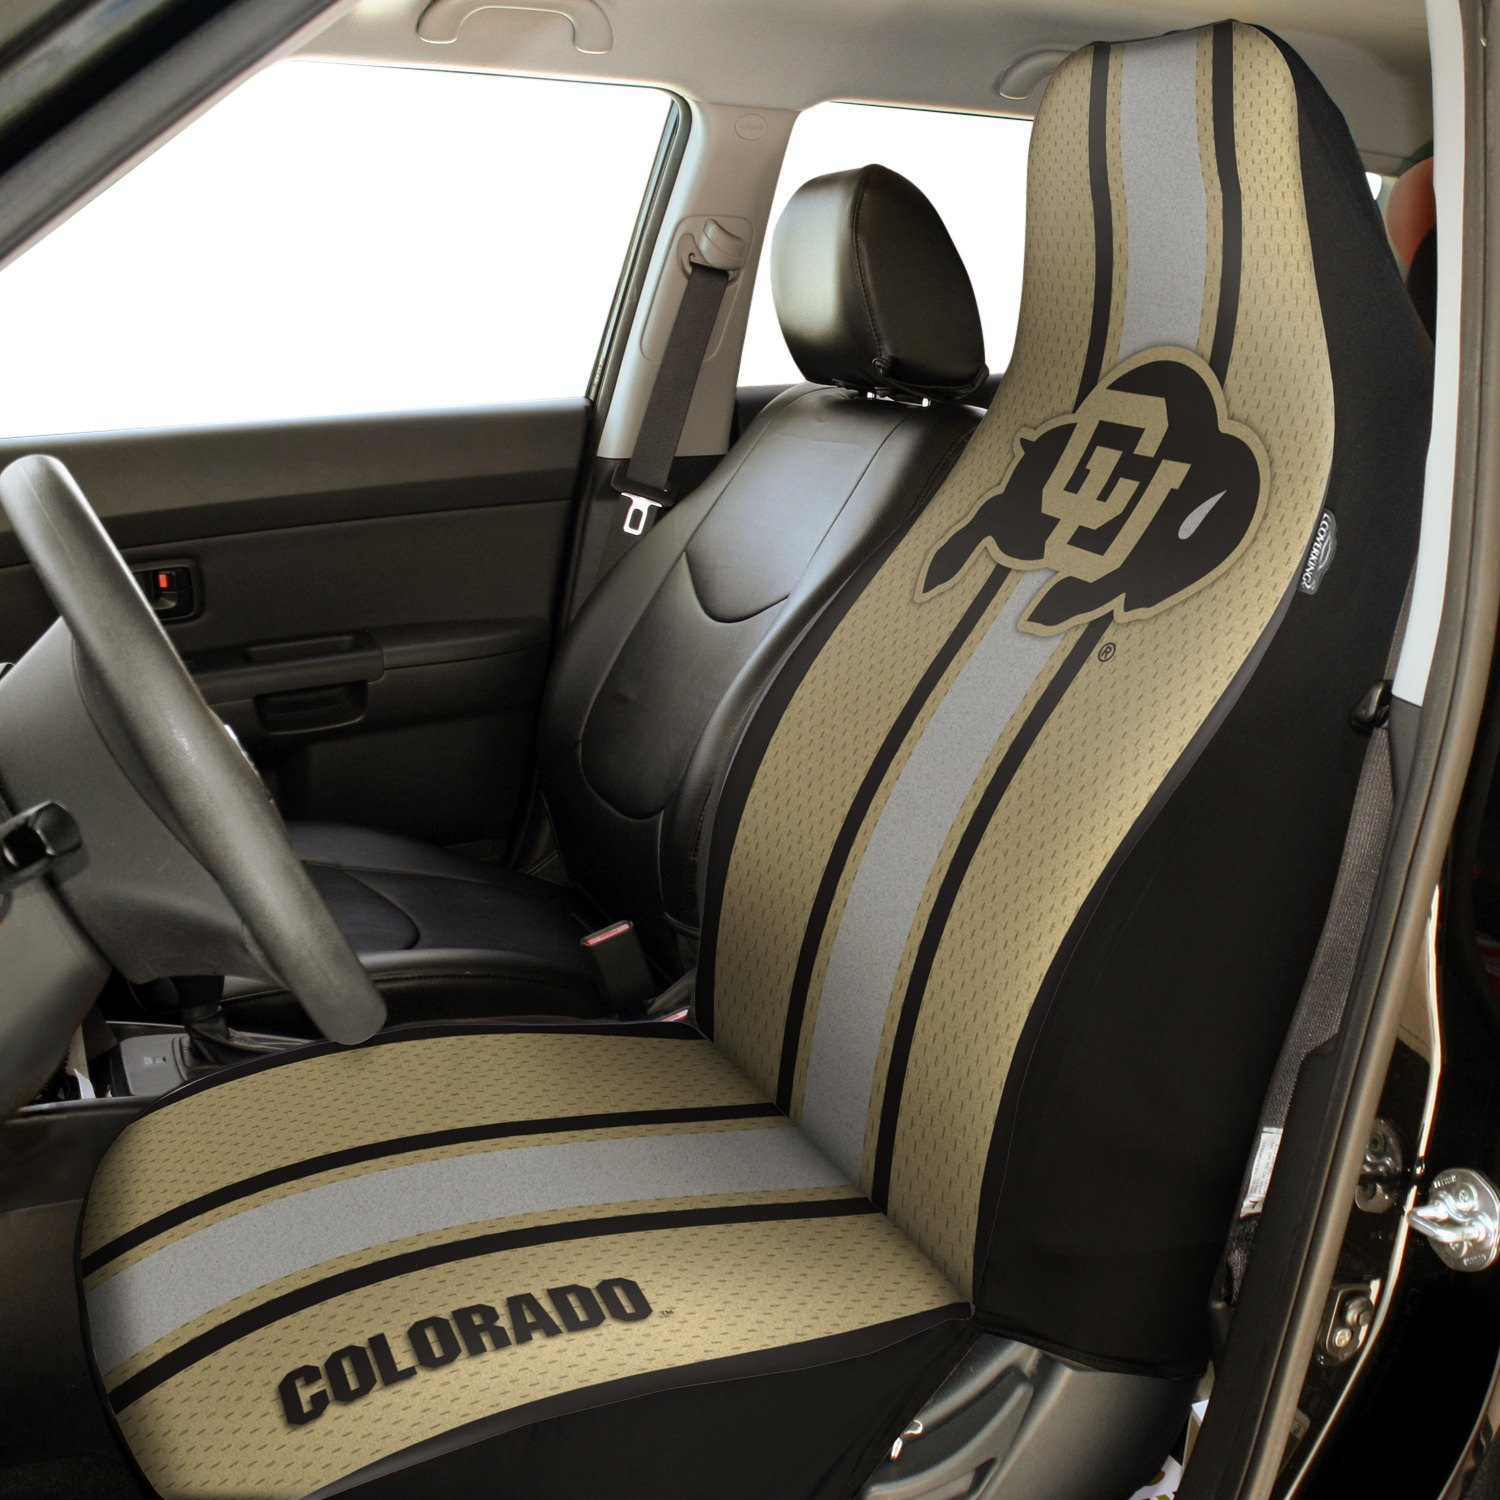 Collegiate Seat Cover University Of Colorado Logos And ColorsCoverkingR